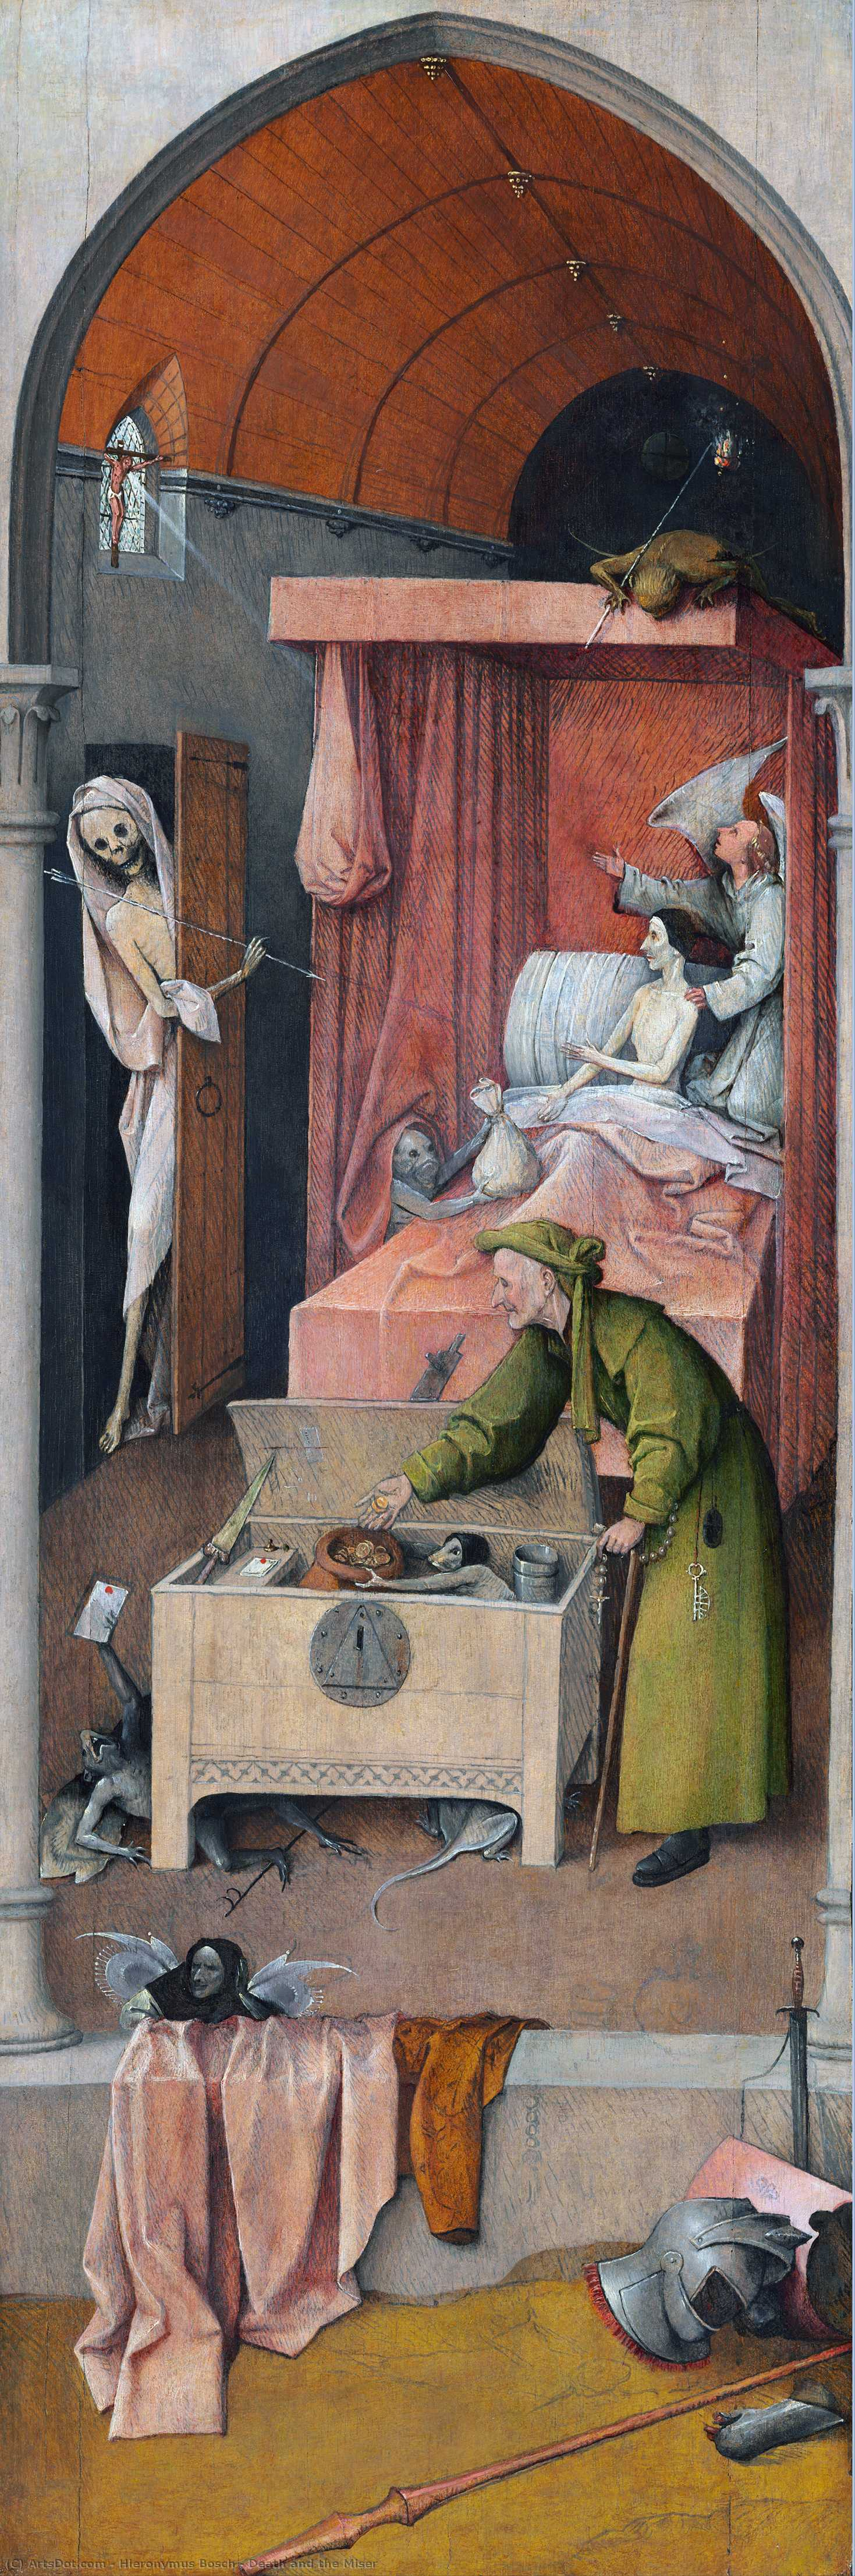 Wikioo.org - The Encyclopedia of Fine Arts - Painting, Artwork by Hieronymus Bosch - Death and the Miser